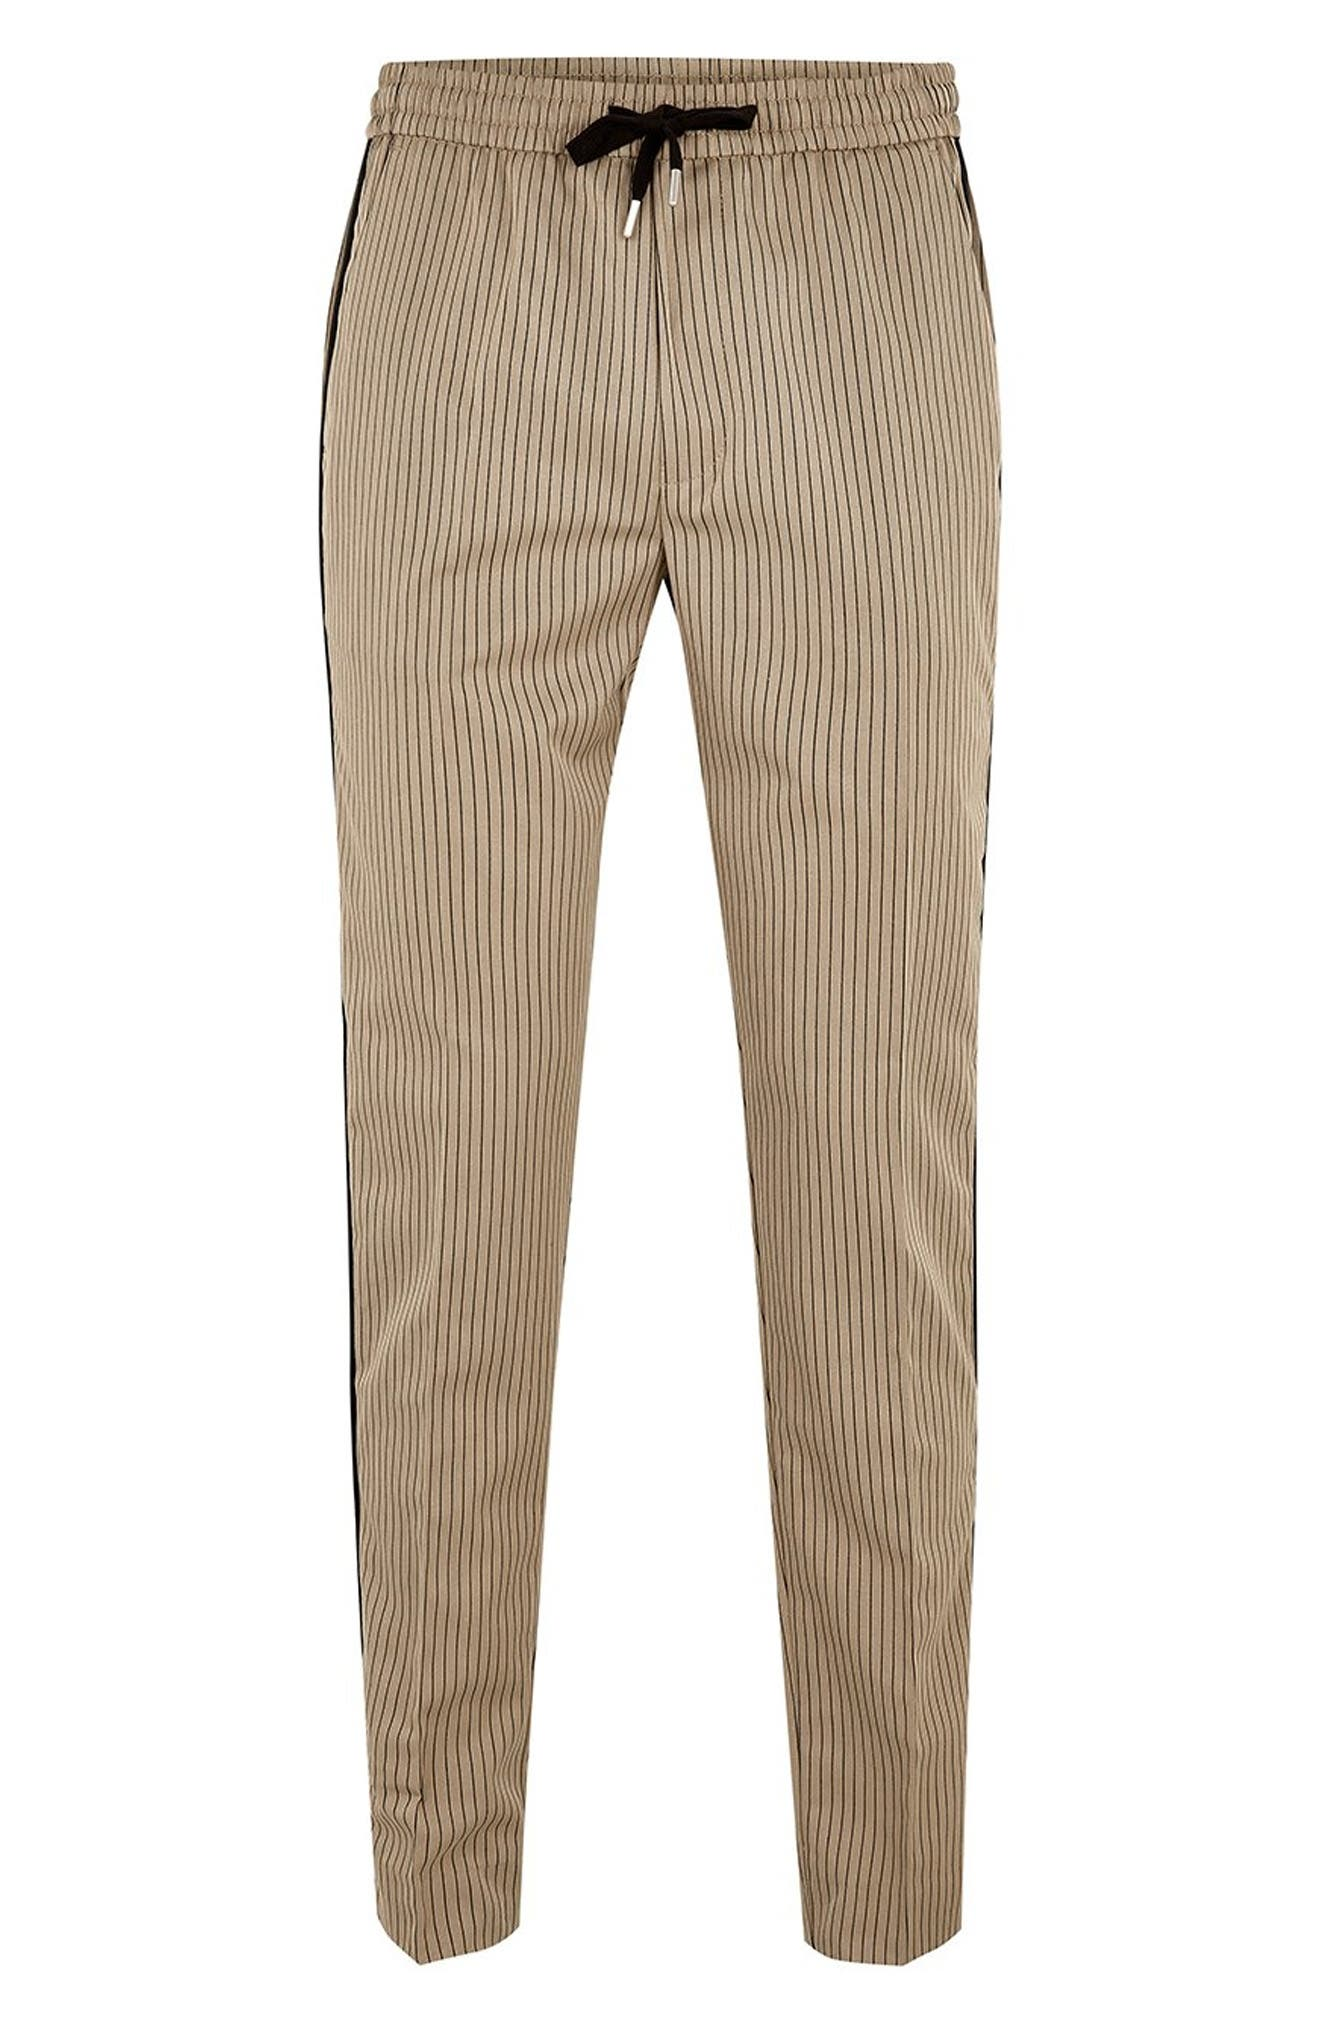 Slim Fit Pinstripe Jogger Pants,                             Alternate thumbnail 4, color,                             LIGHT BROWN